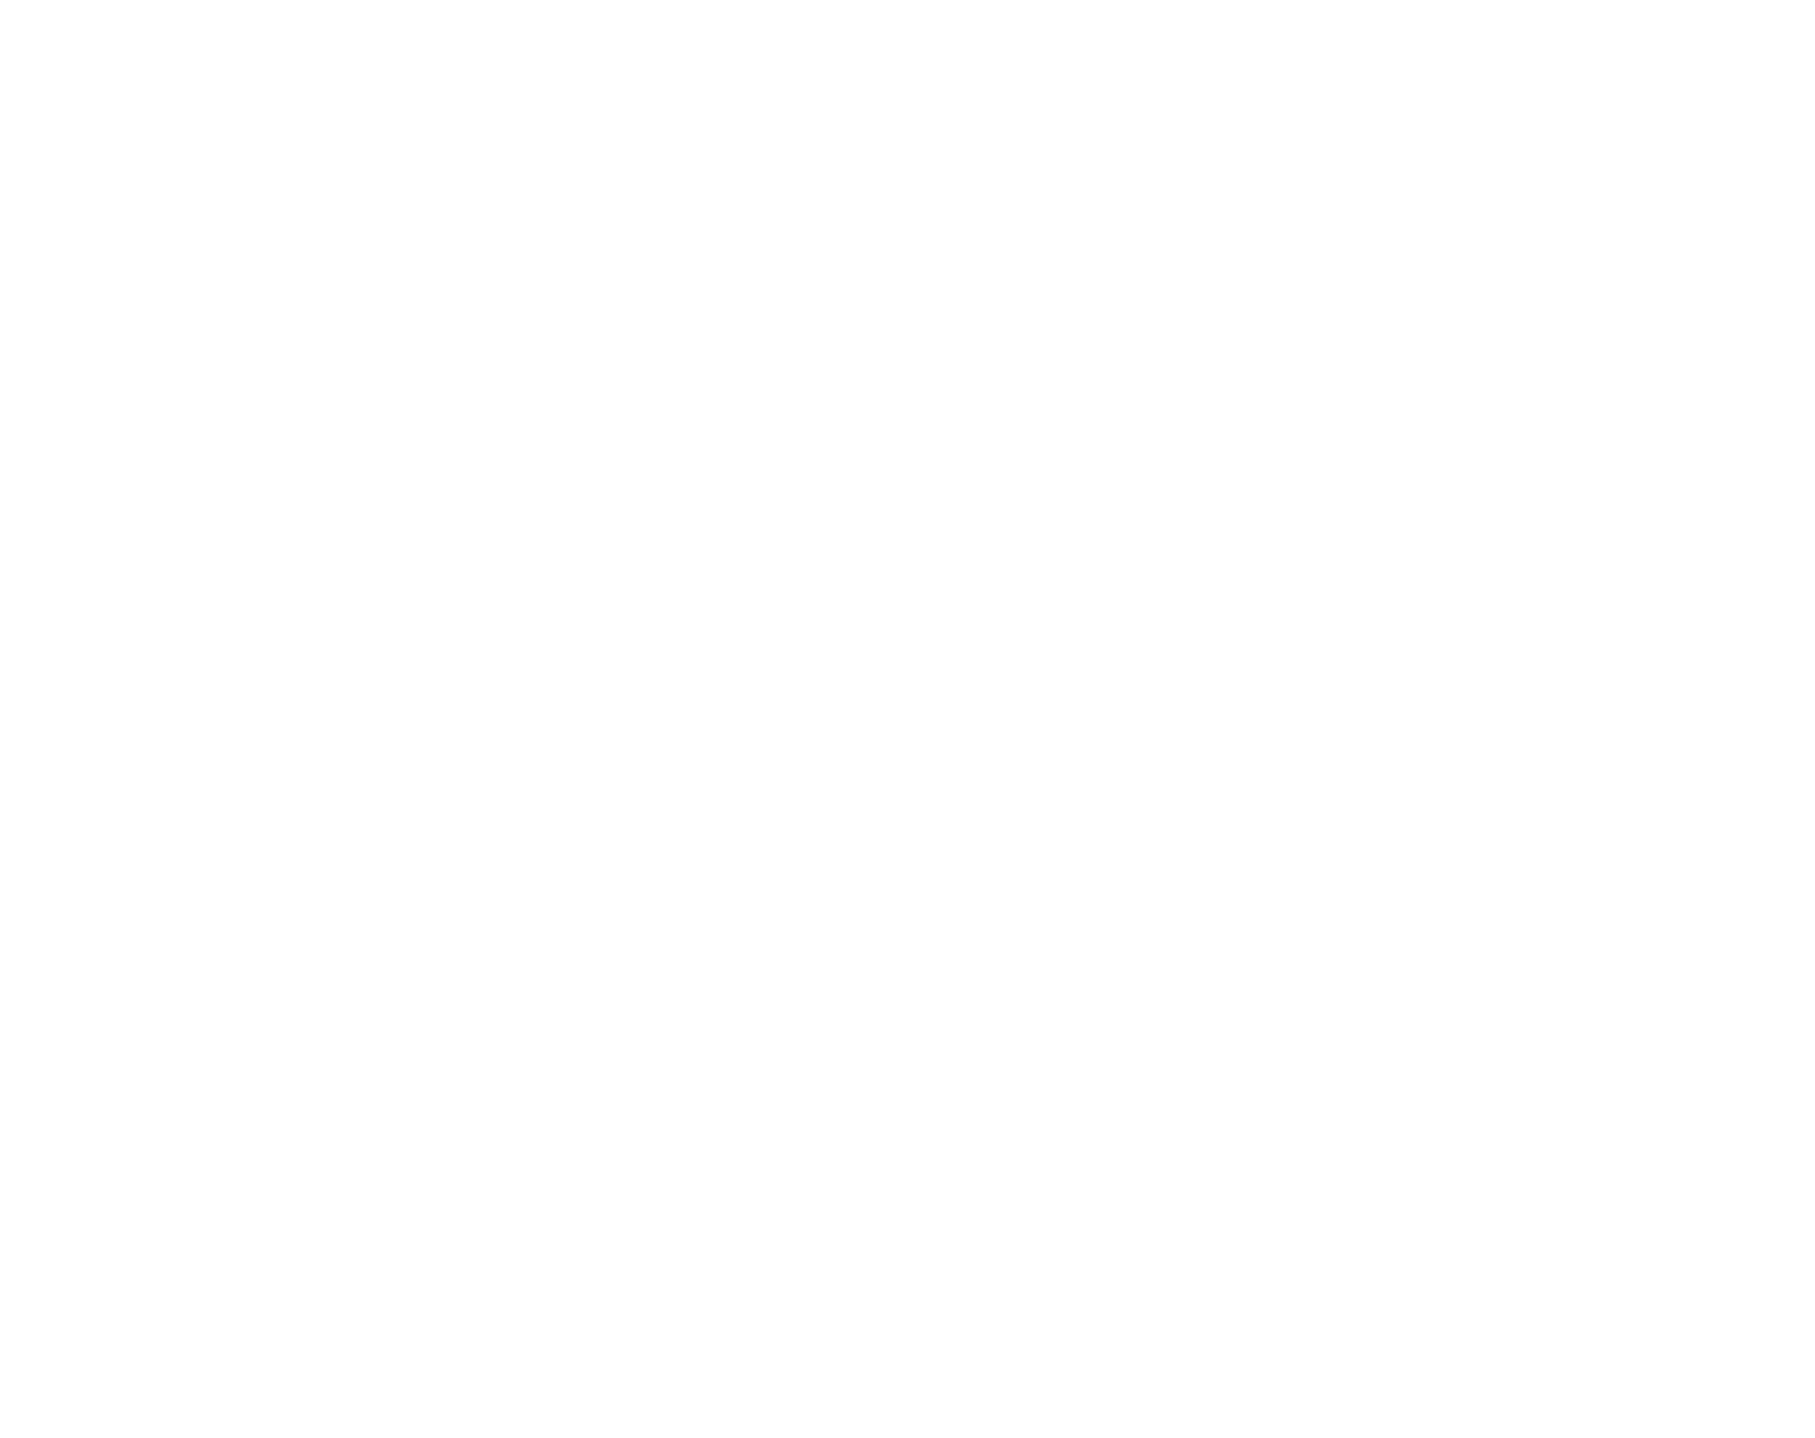 School of Events, Enterprise & Employability